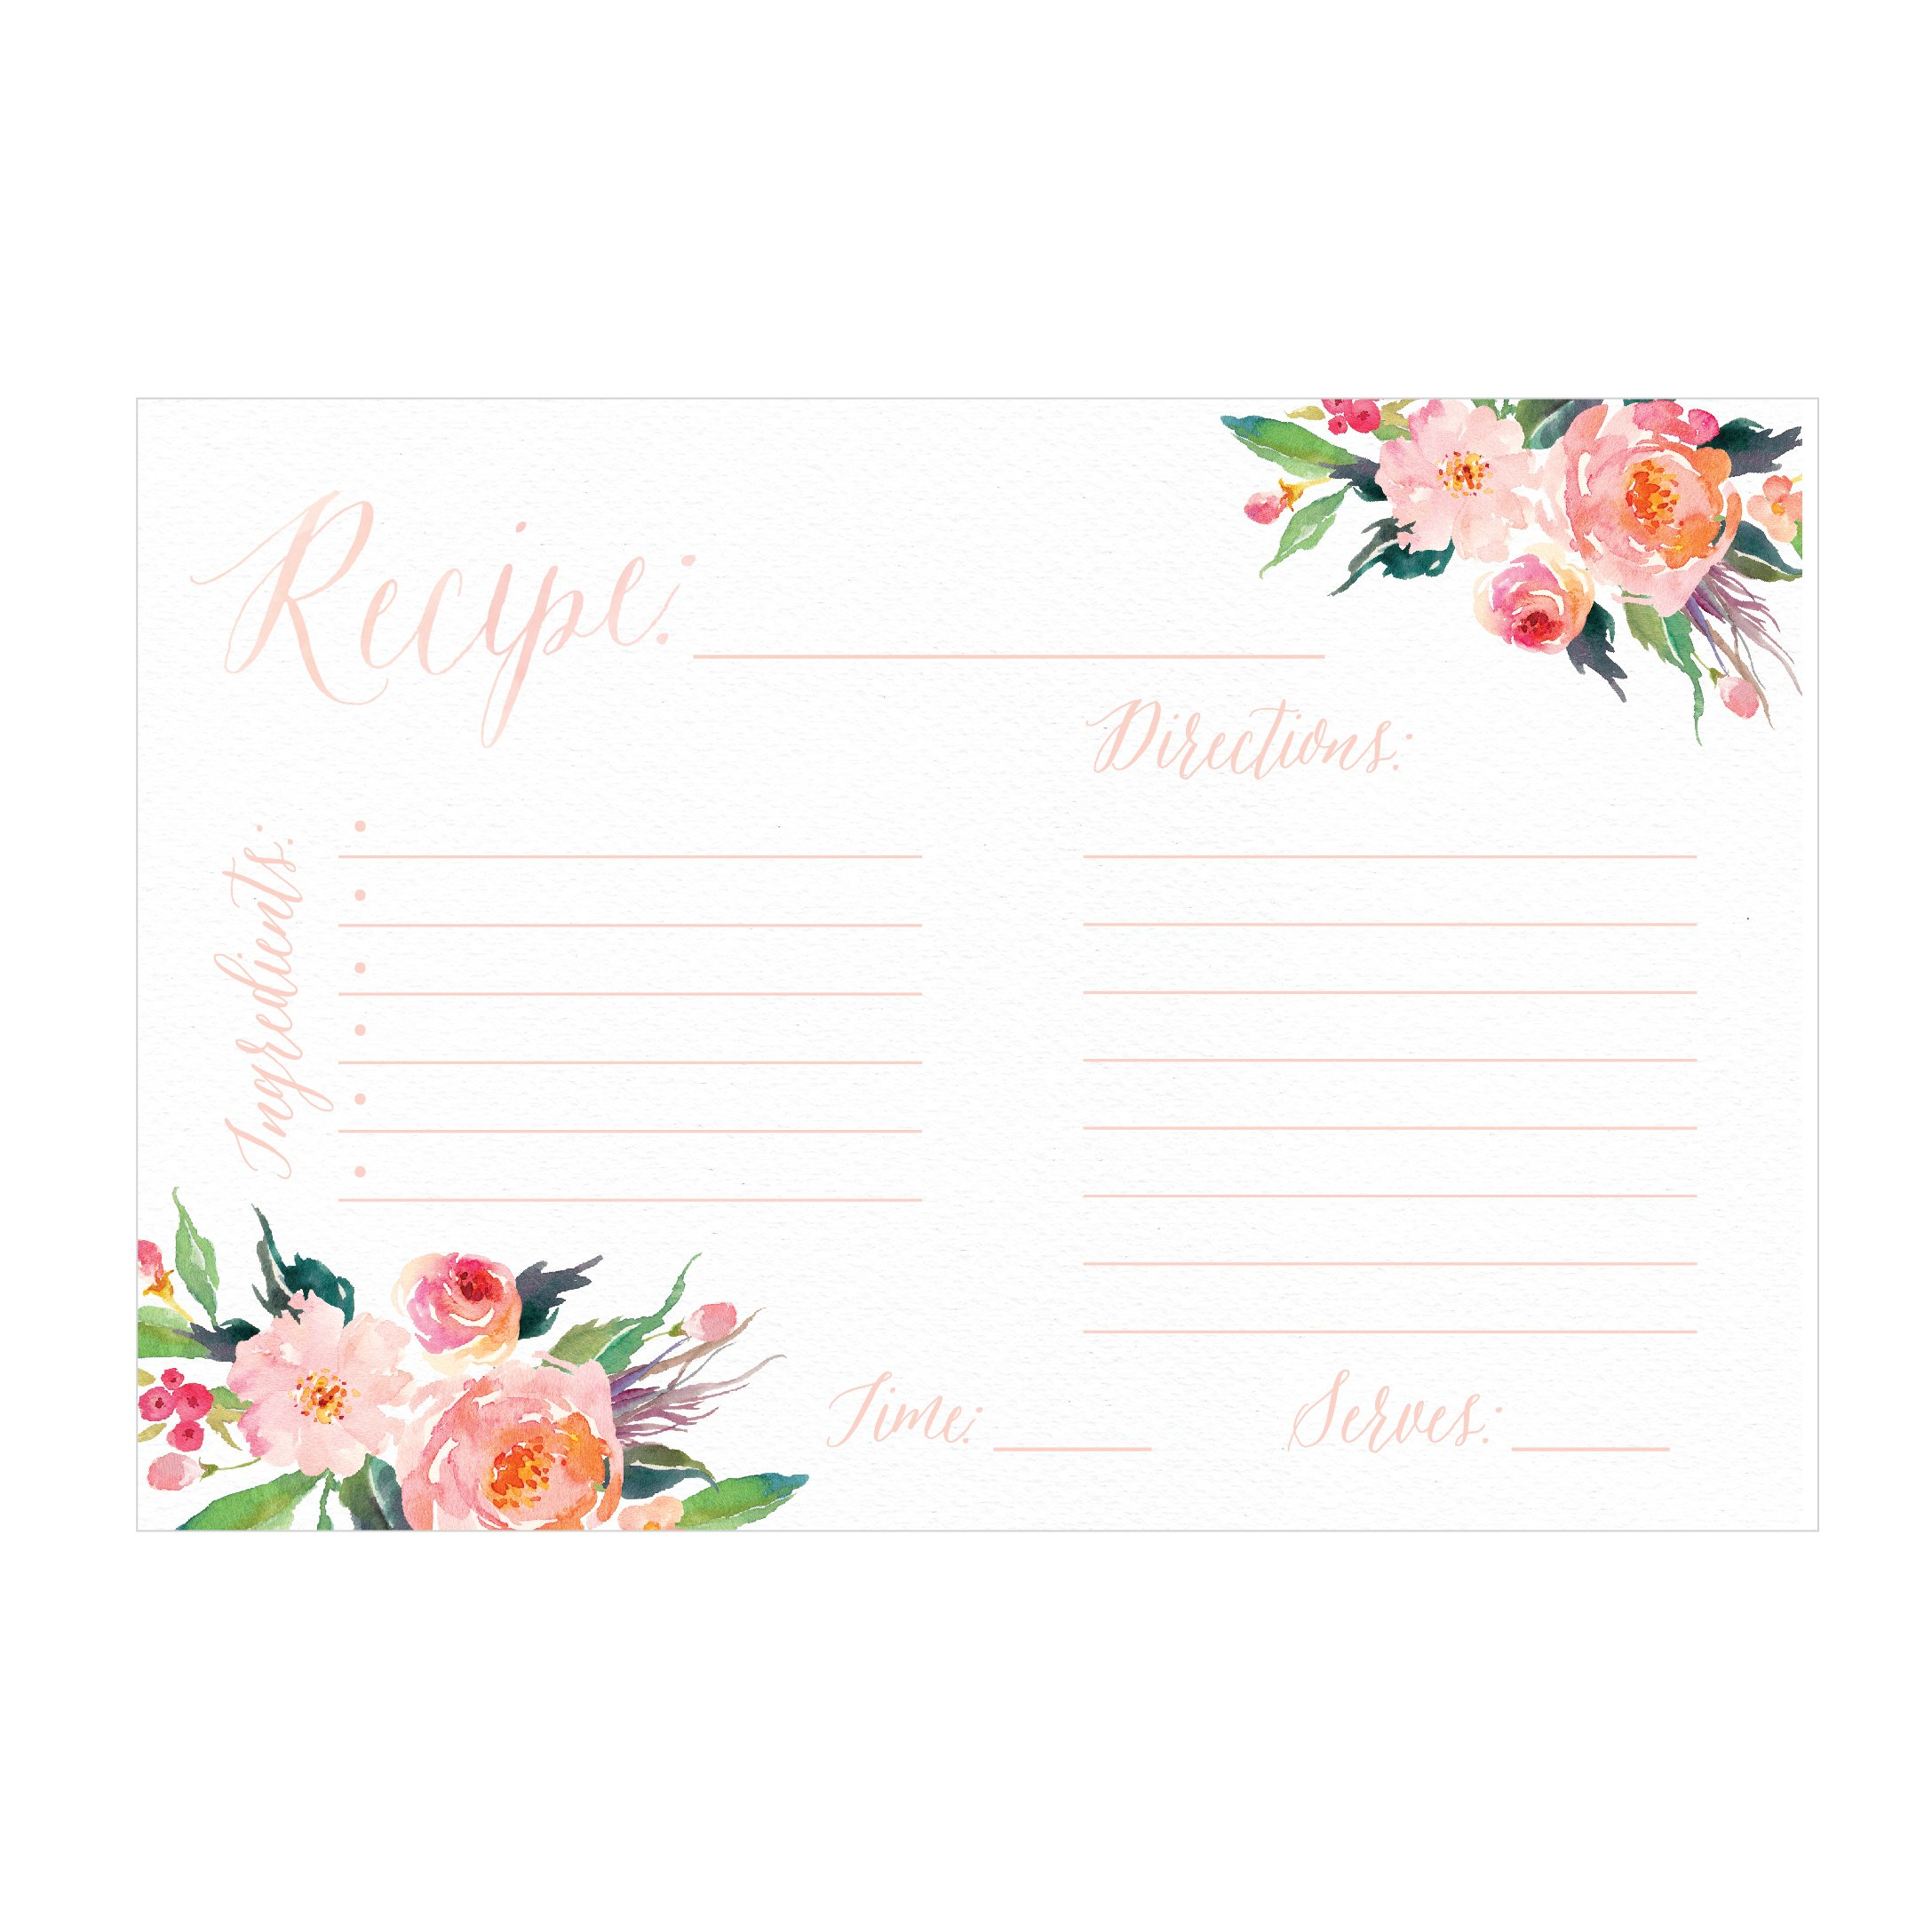 recipe cards blank 4x6 card amazon bridal shower order overview